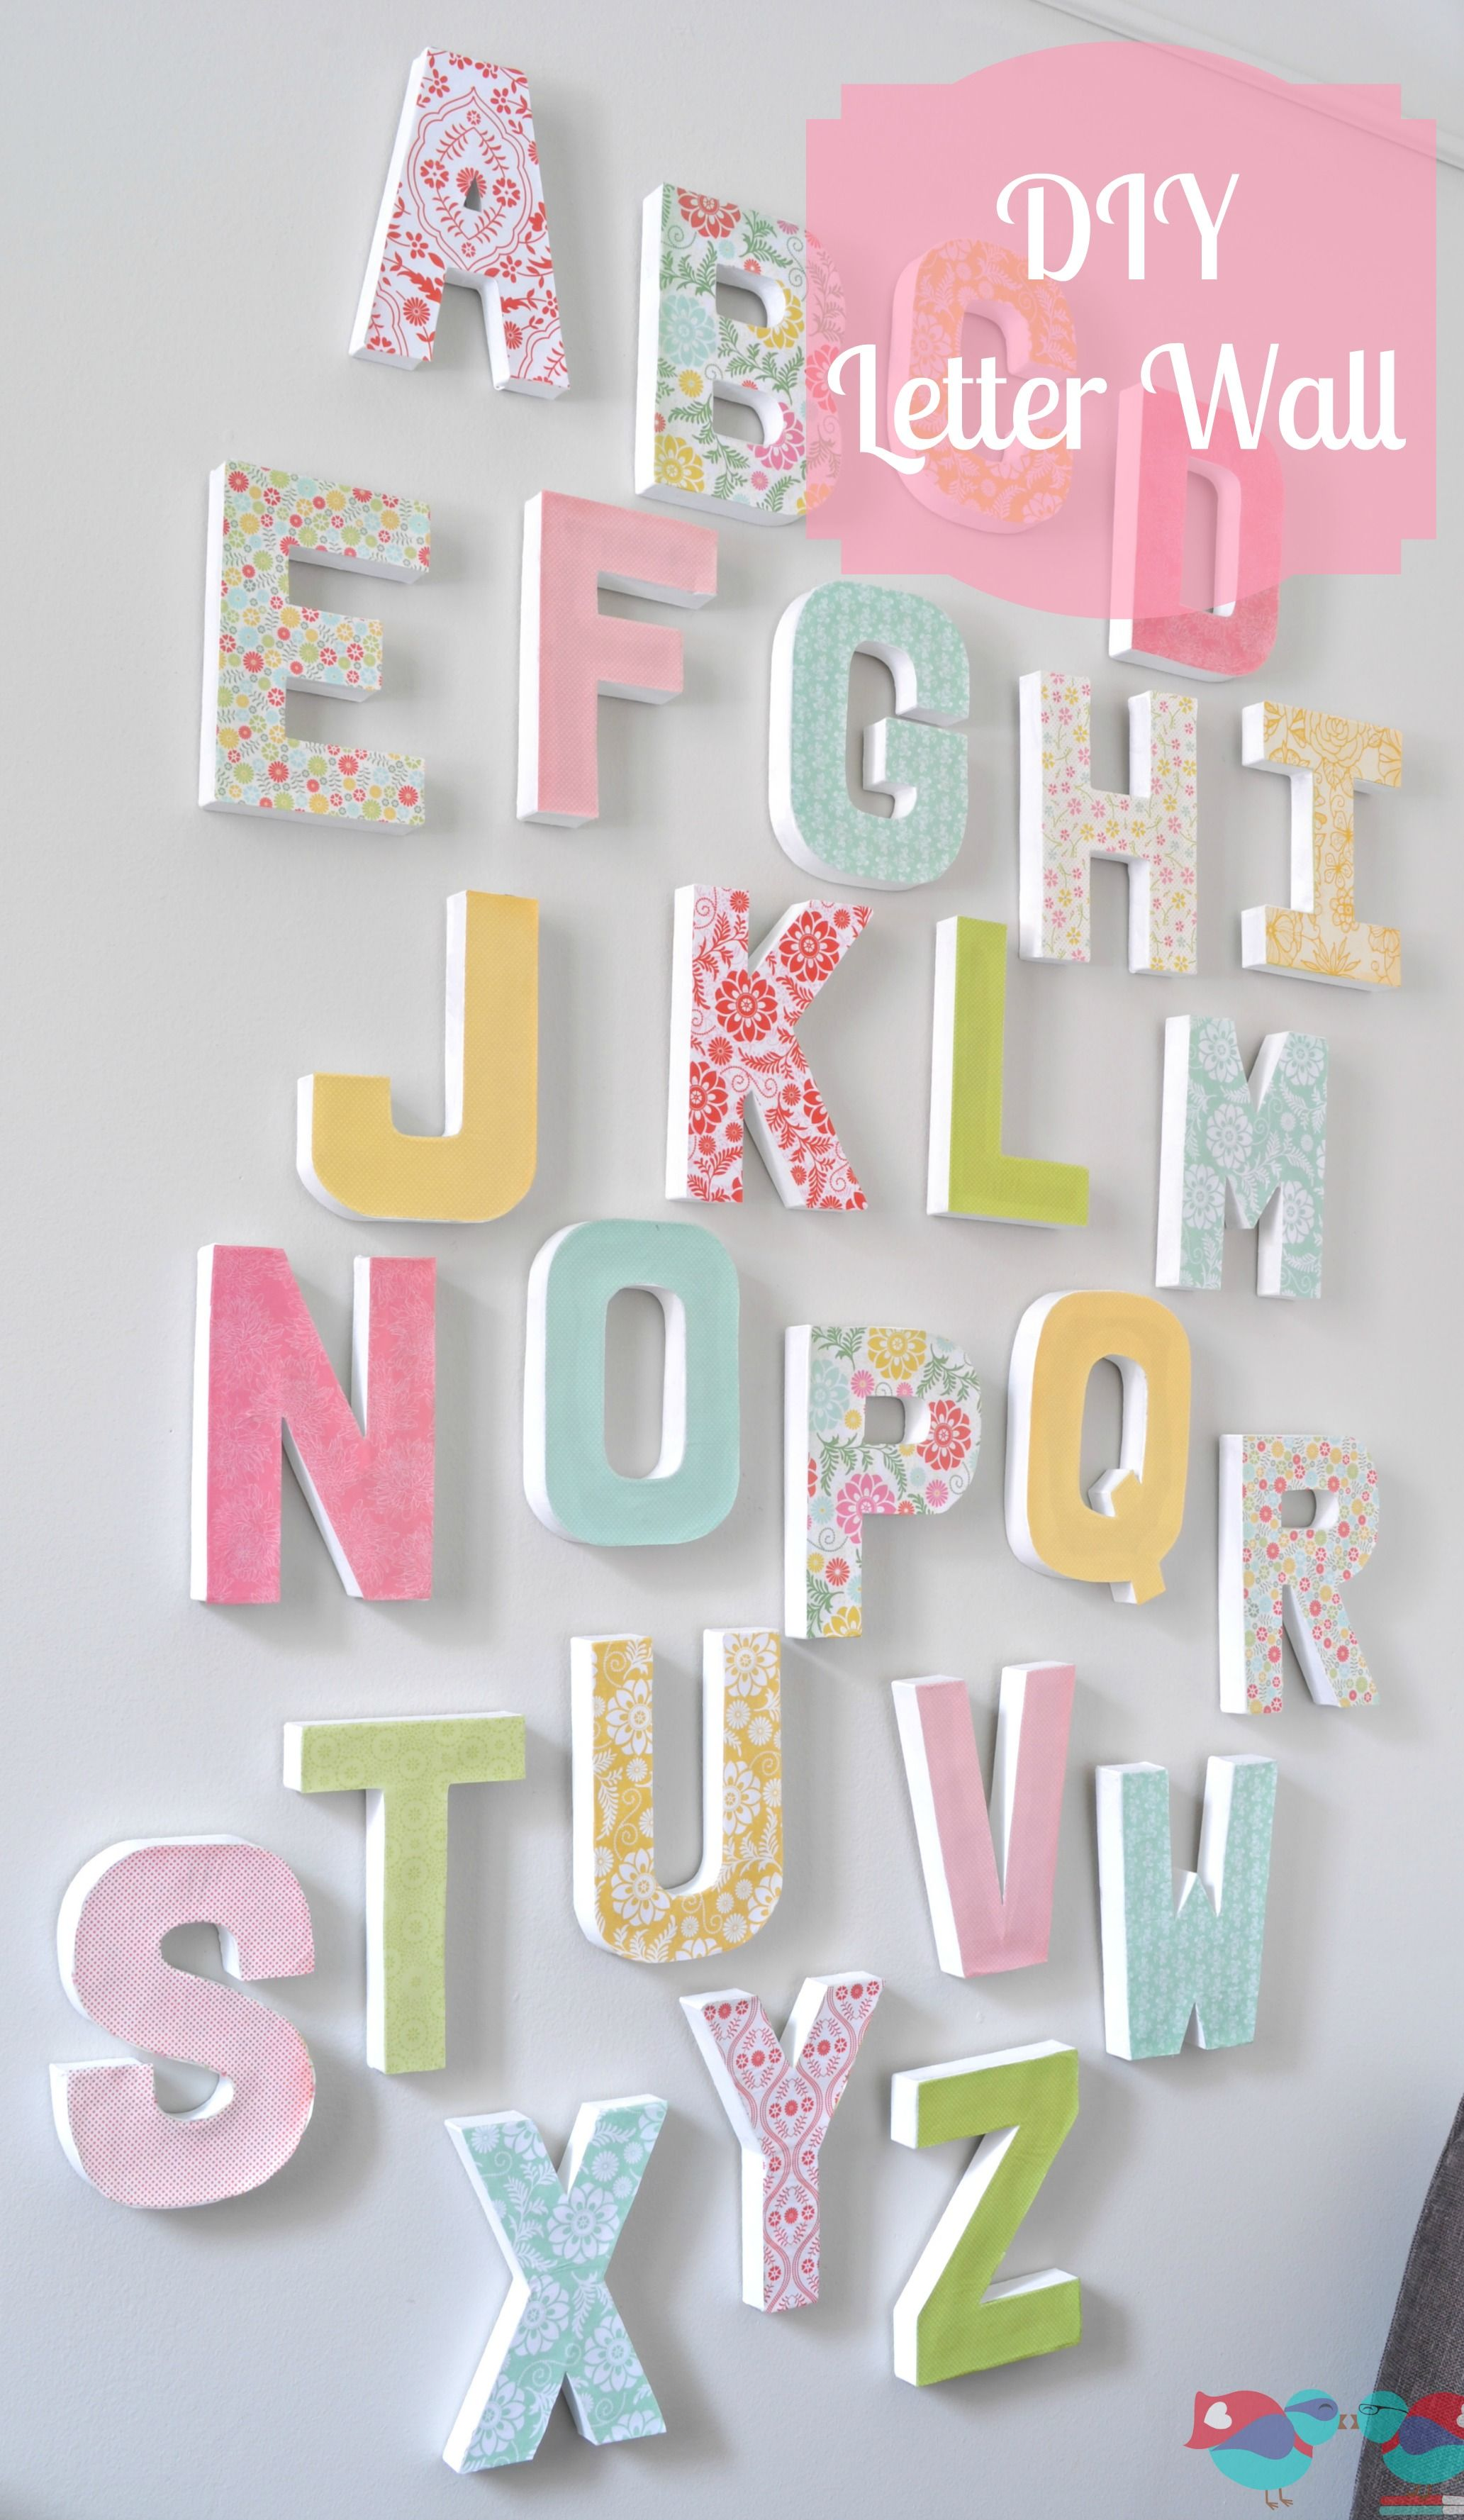 Diy Letter Wall Lovenerdmaggie Colorful Decor Modpodge Decorative Letters For